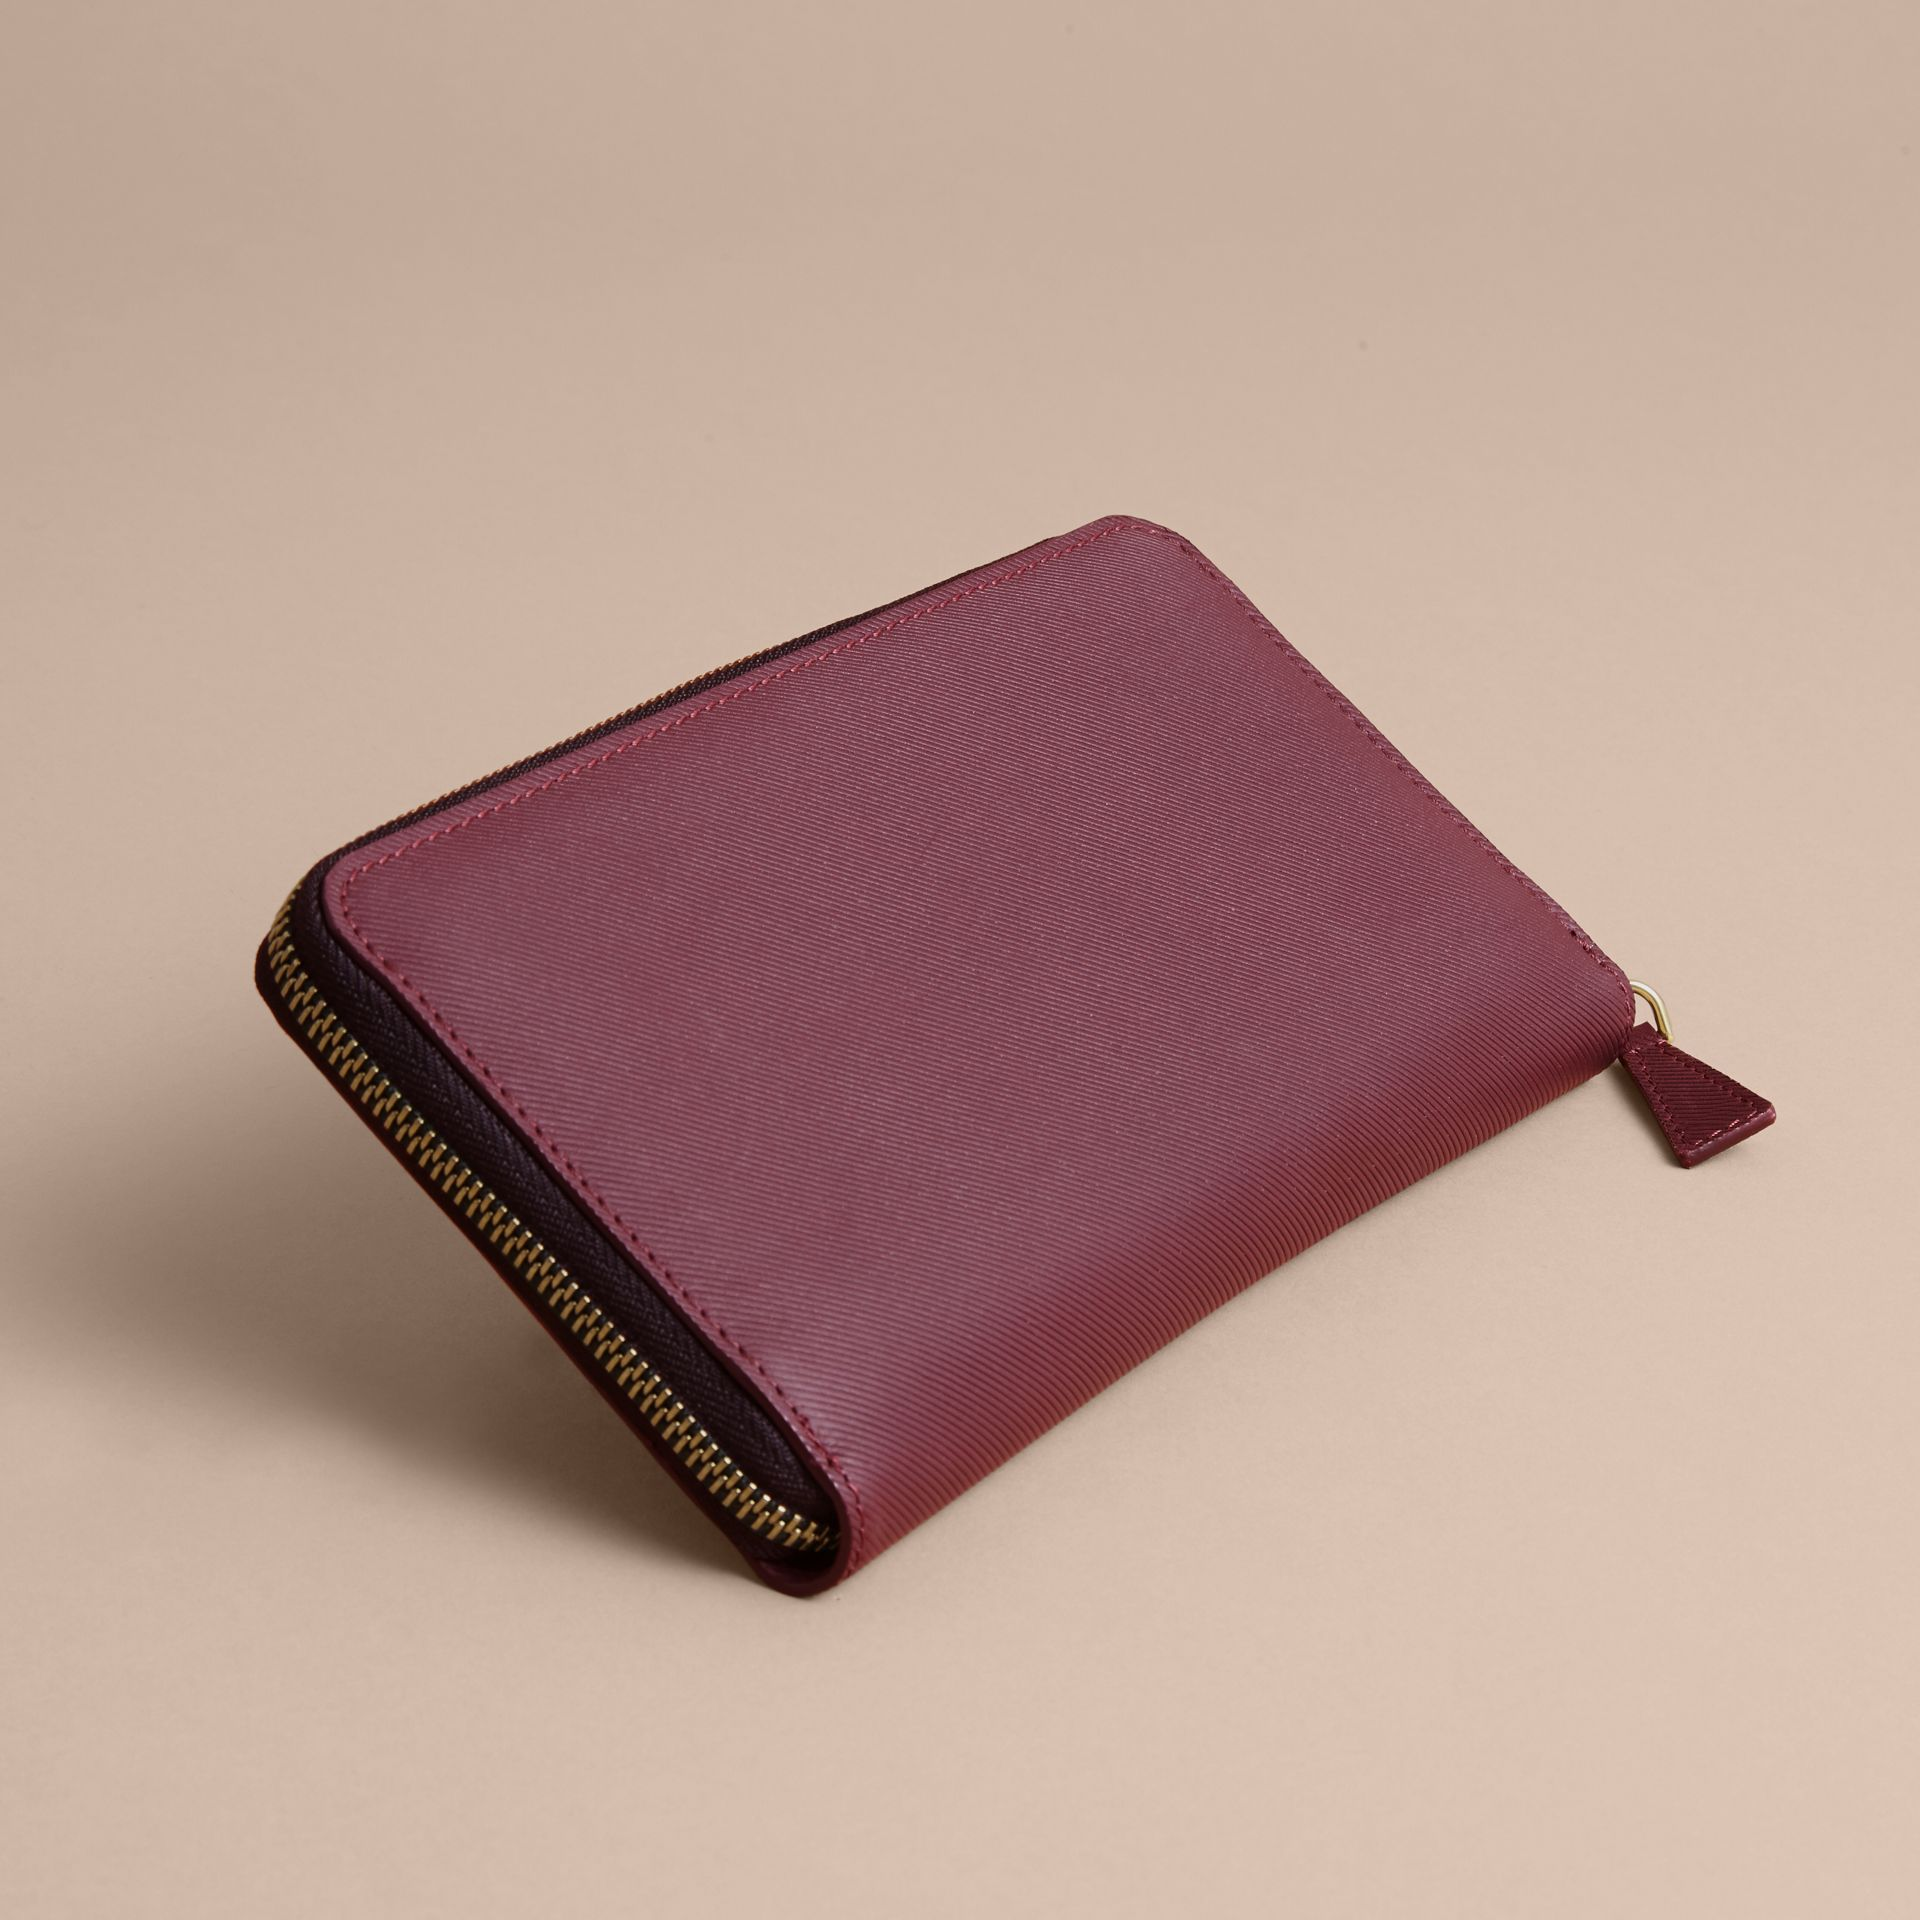 Trench Leather Ziparound Wallet in Wine - Men | Burberry Canada - gallery image 3